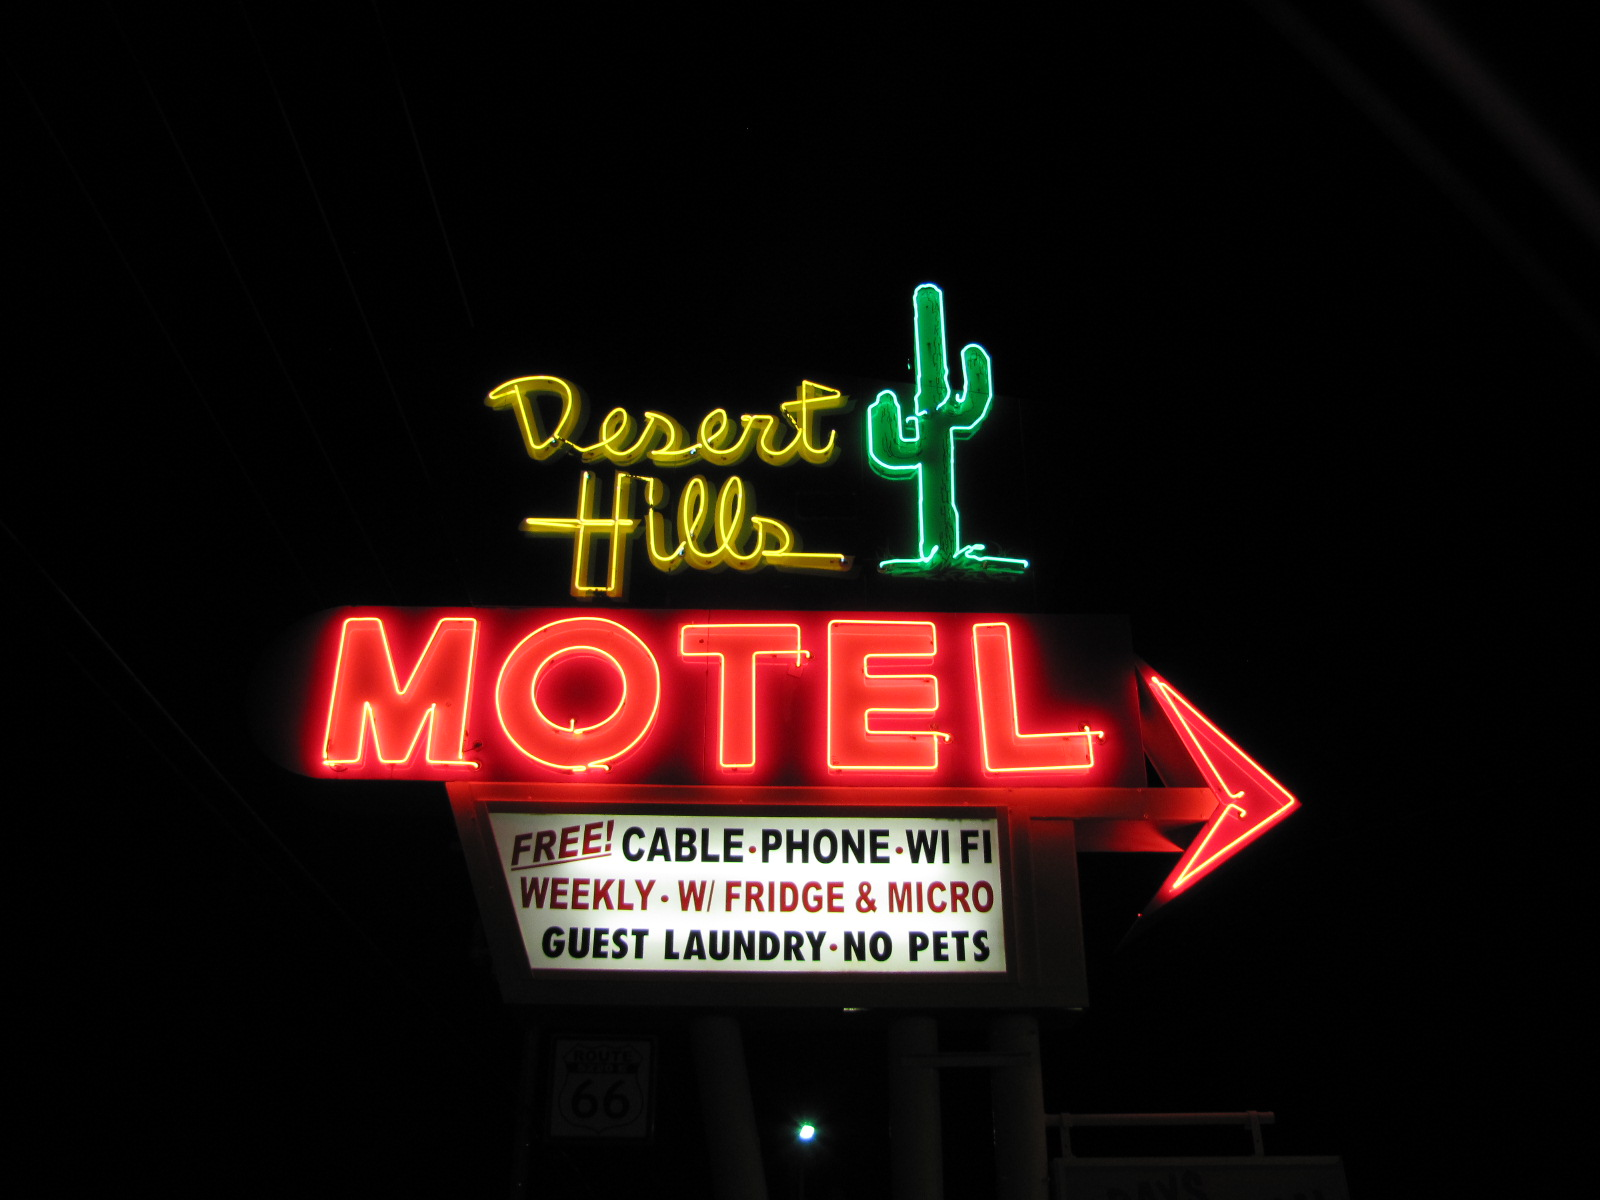 Desert Hills Motel - 5220 East 11th Street, Tulsa, Oklahoma U.S.A. - September 14, 2011